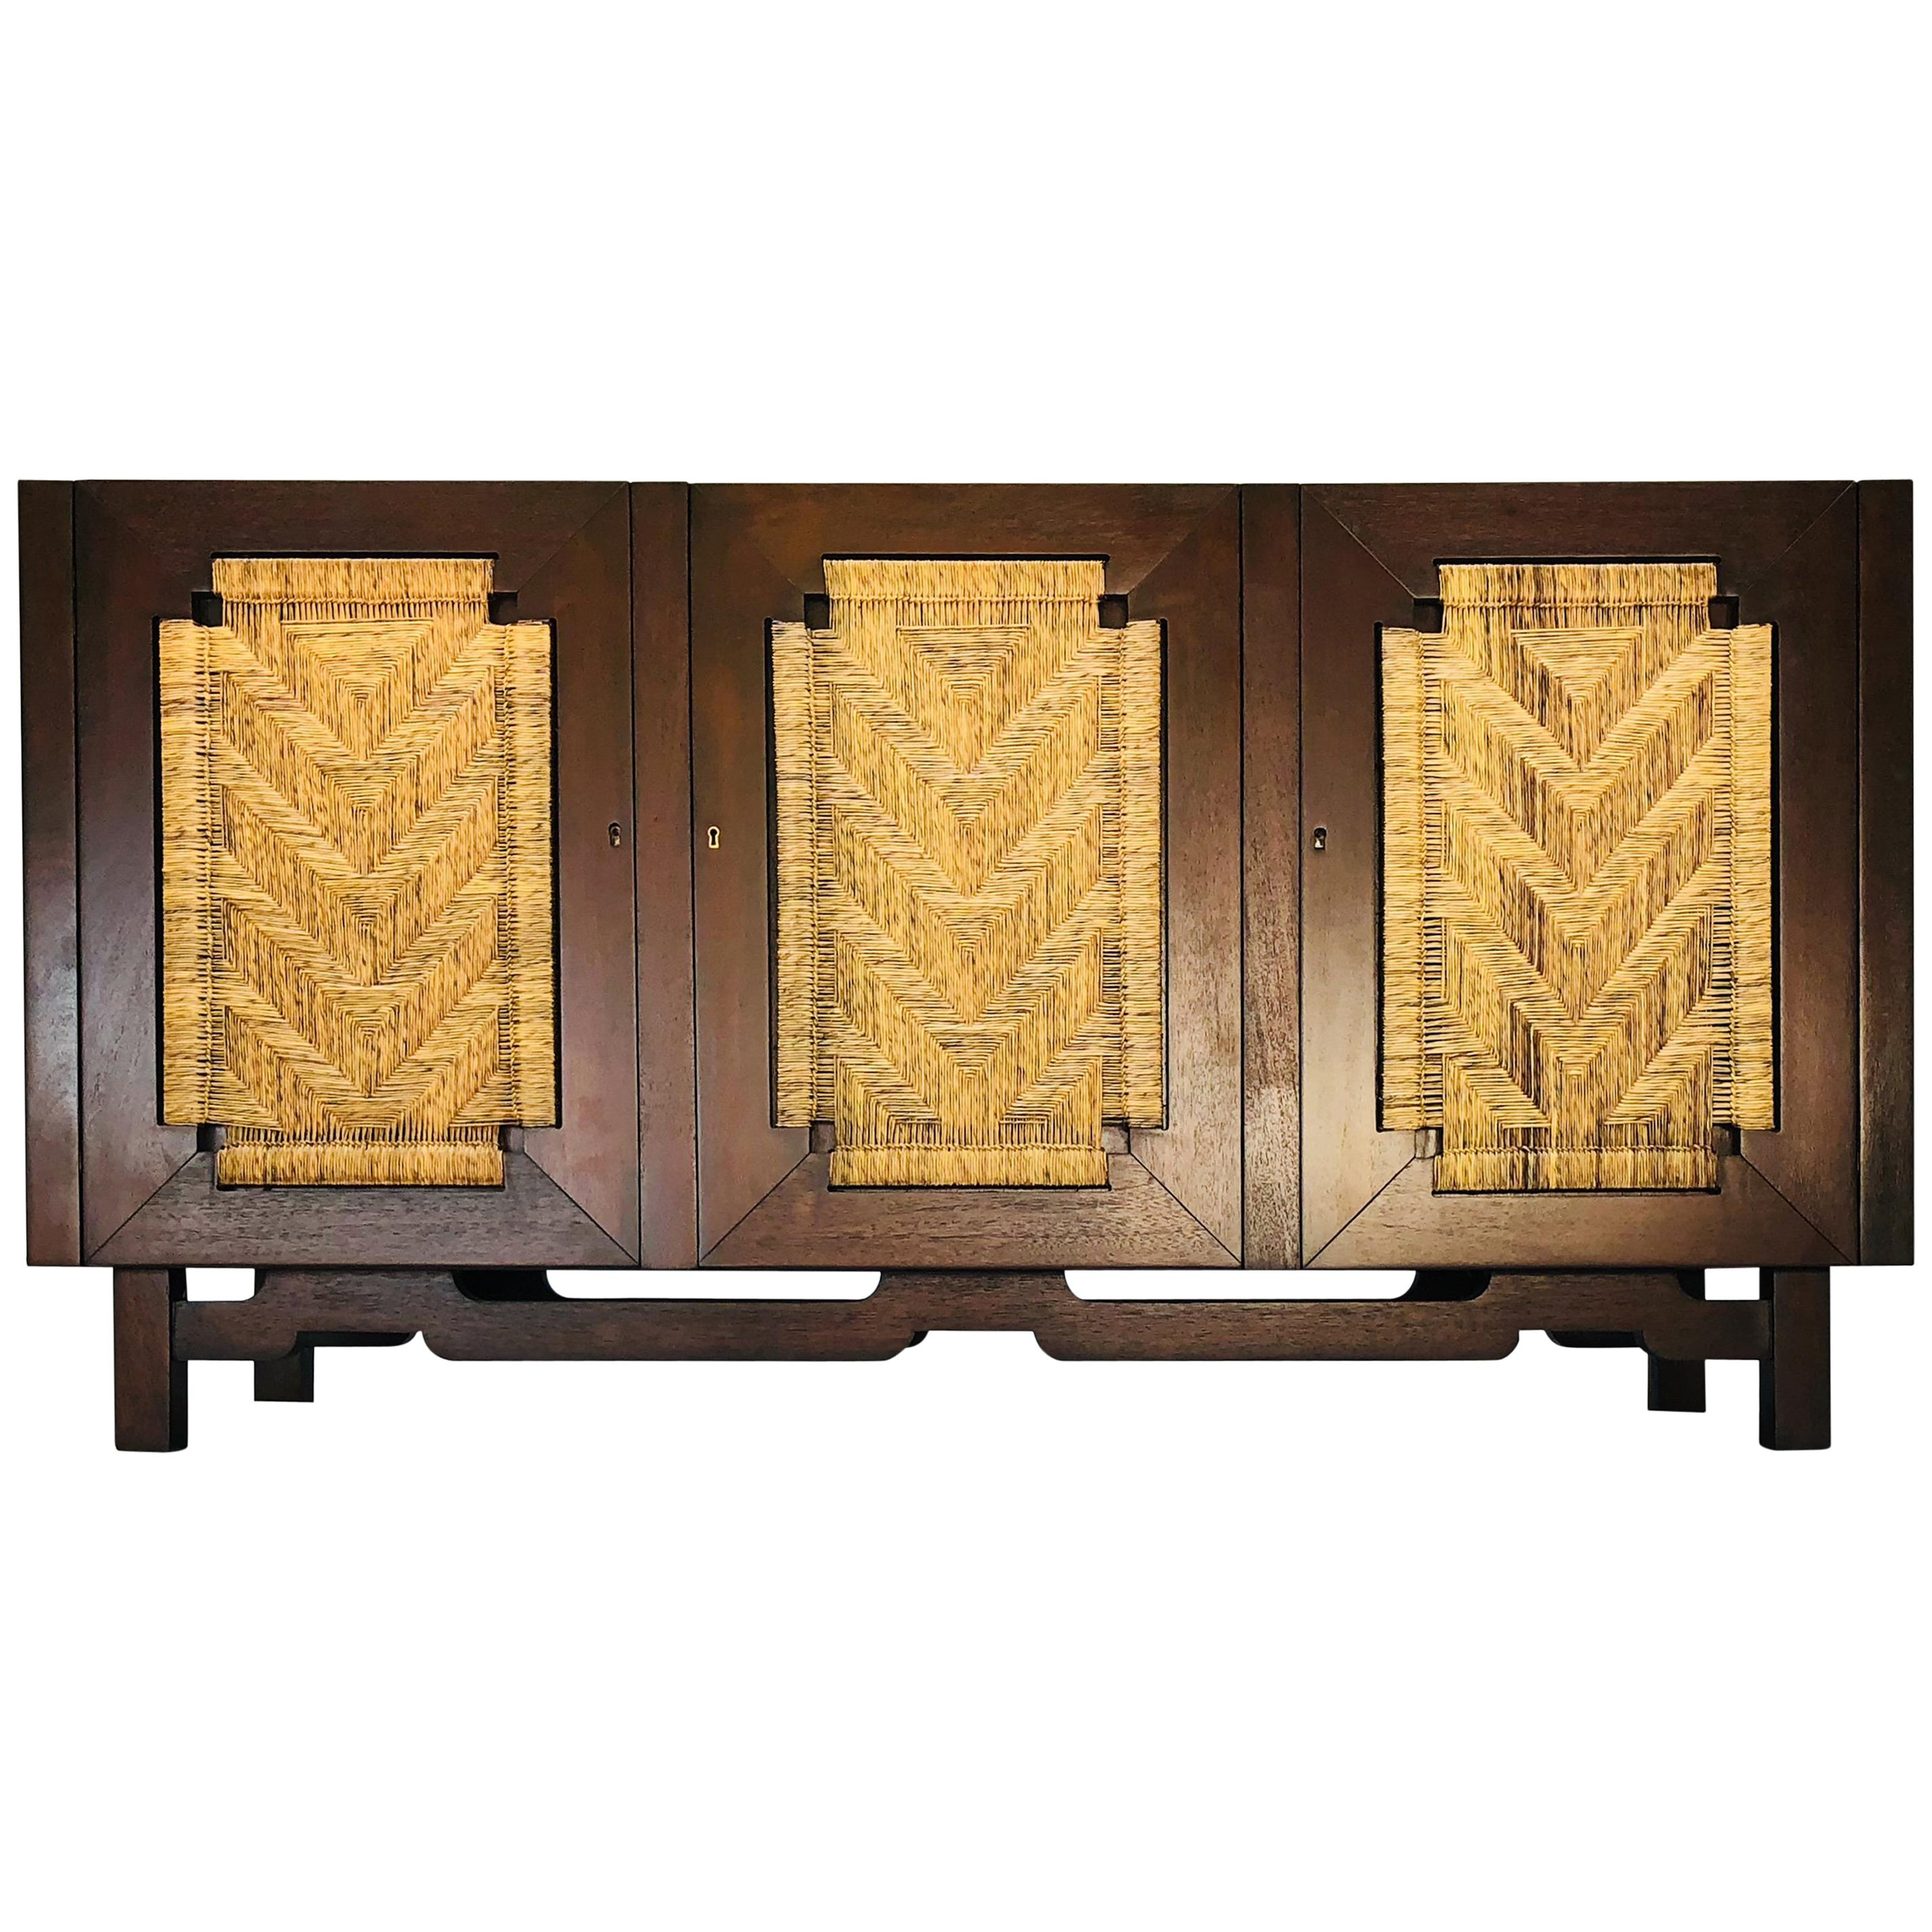 Edmond Spence Mahogany Sideboard Woven Sea Grass Faced Doors Industrial Mueblera  sc 1 st  1stDibs & Edmund Spence Mahogany Side Board Woven Sea Grass Faced Doors at 1stdibs